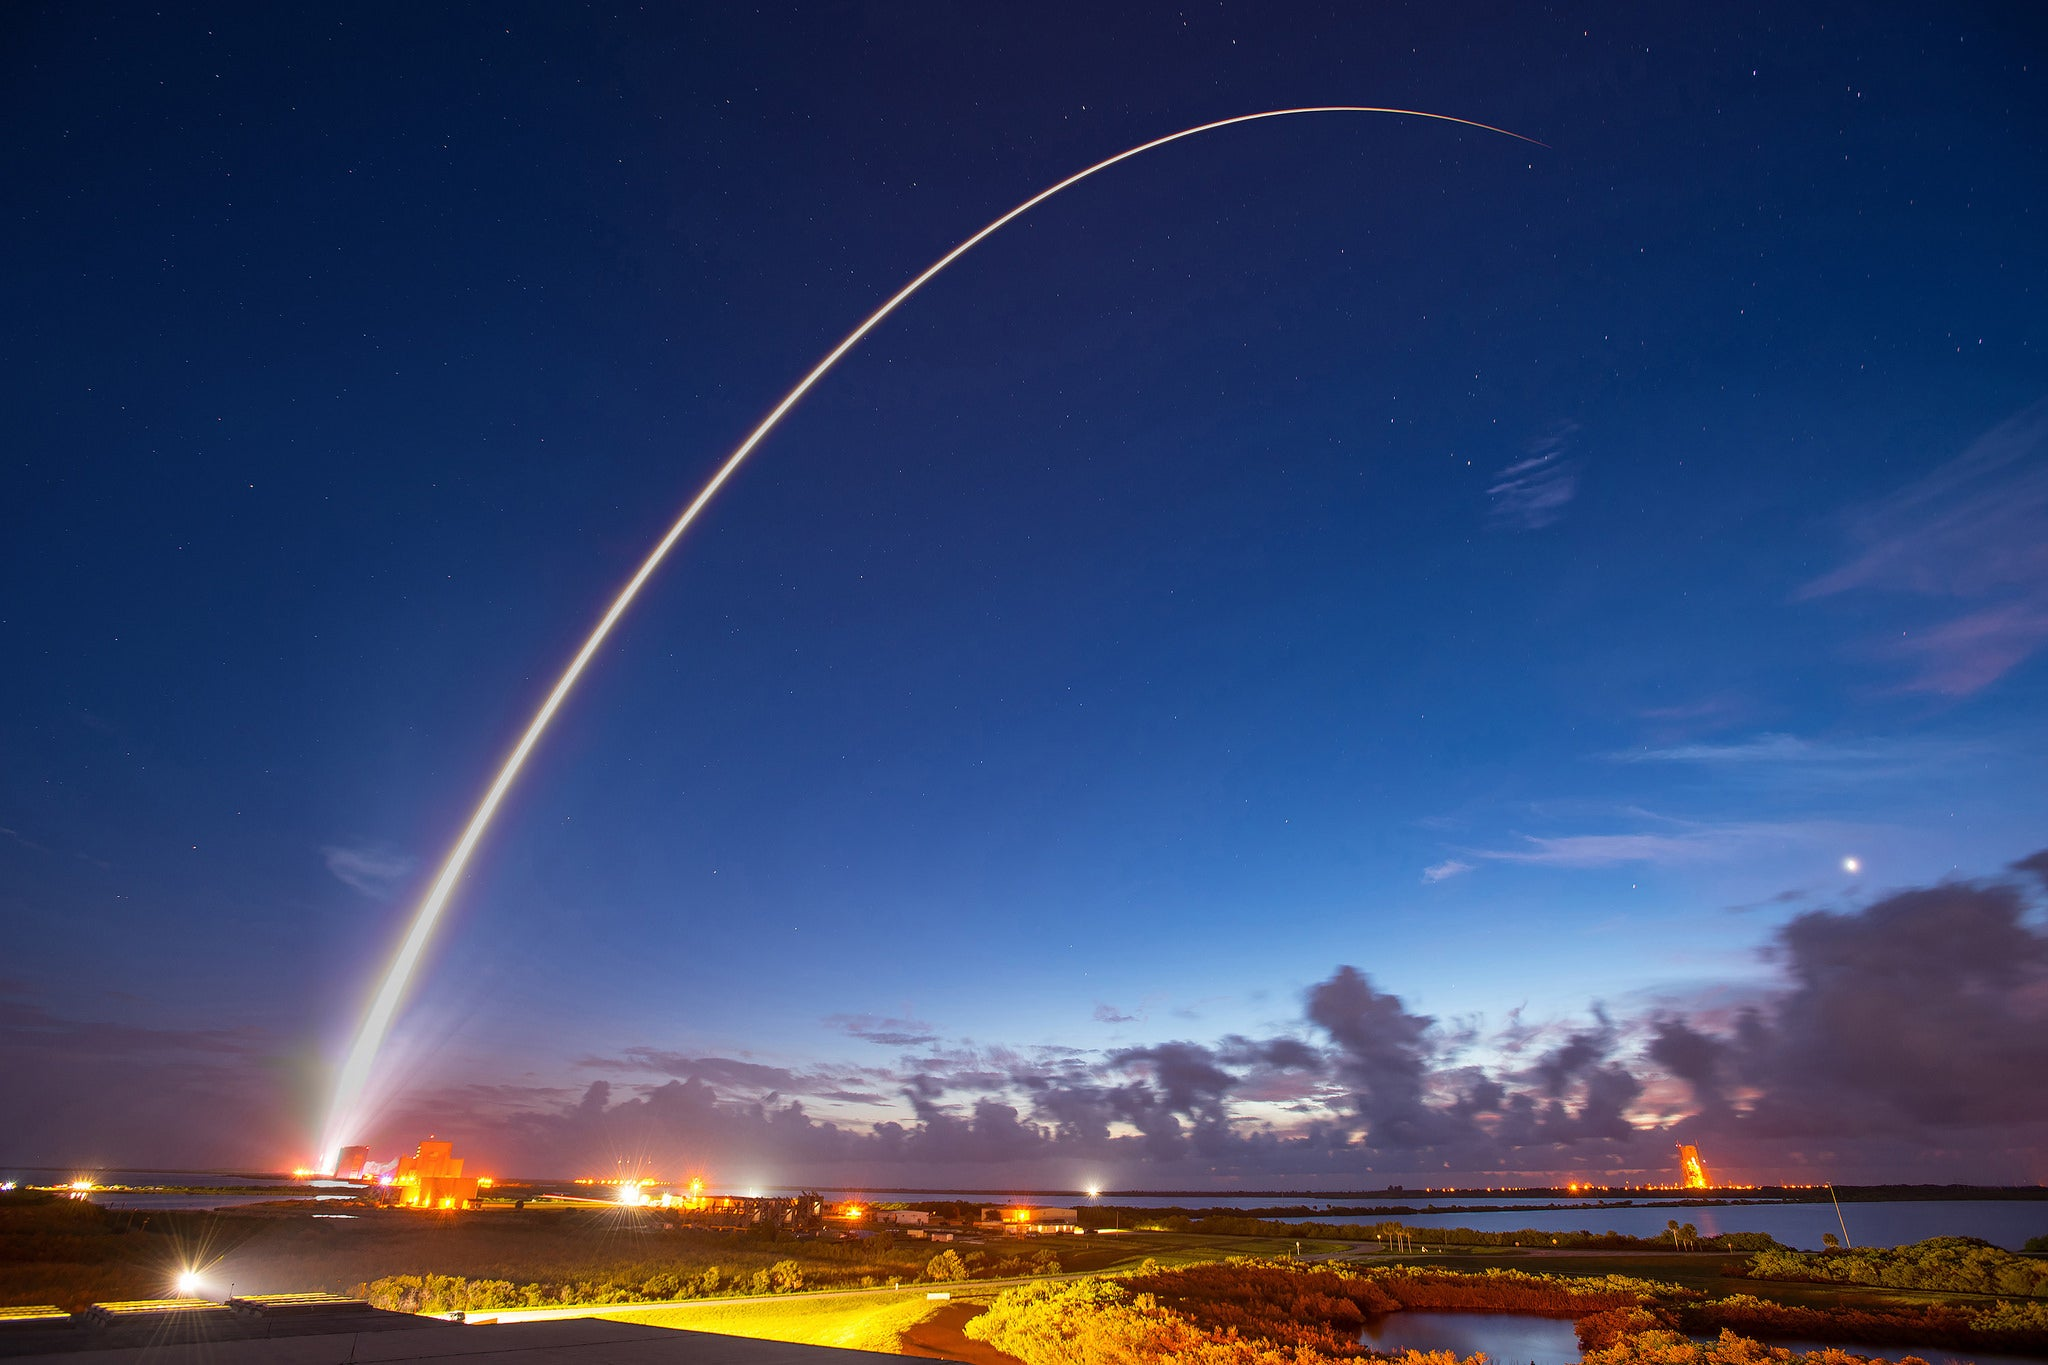 The striking launch of a satellite